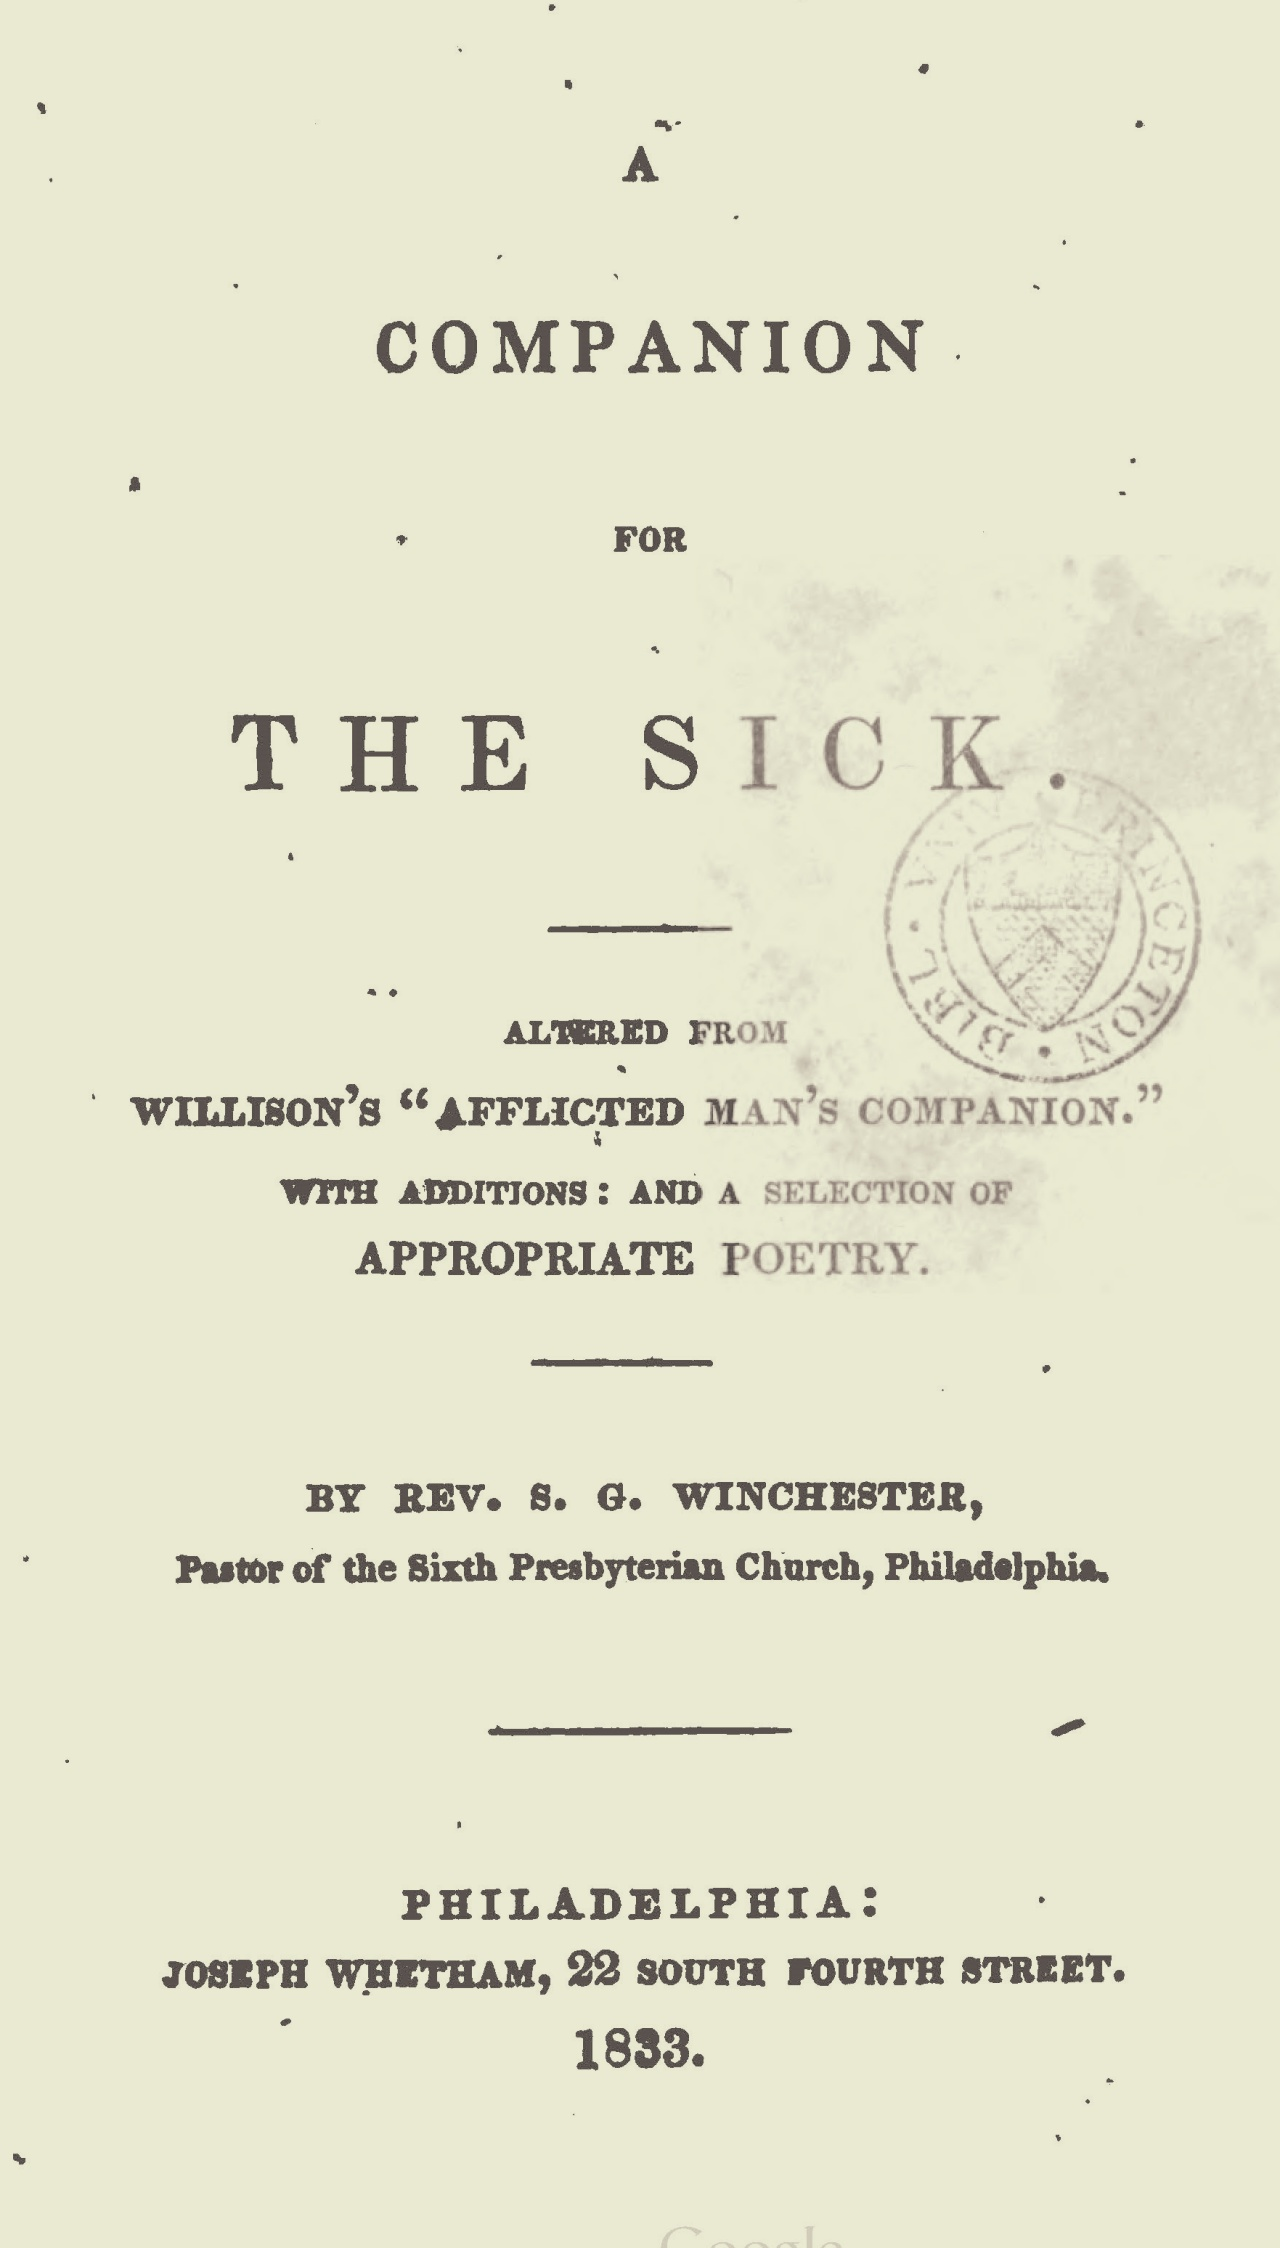 Winchester, Samuel Gover, Companion for the Sick Title Page.jpg